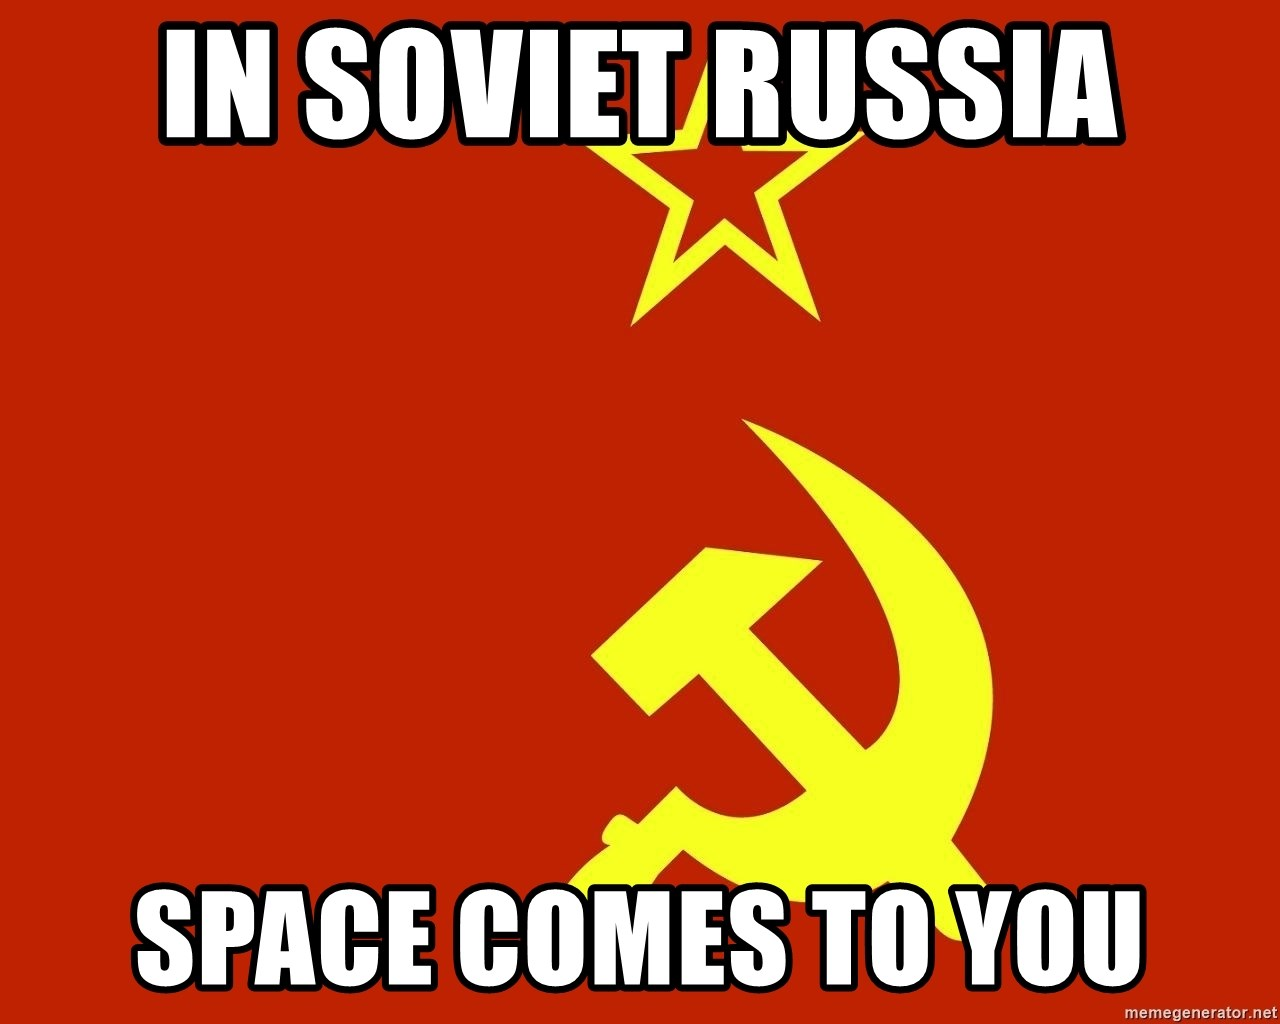 In Soviet Russia - In soviet russia Space comes to you